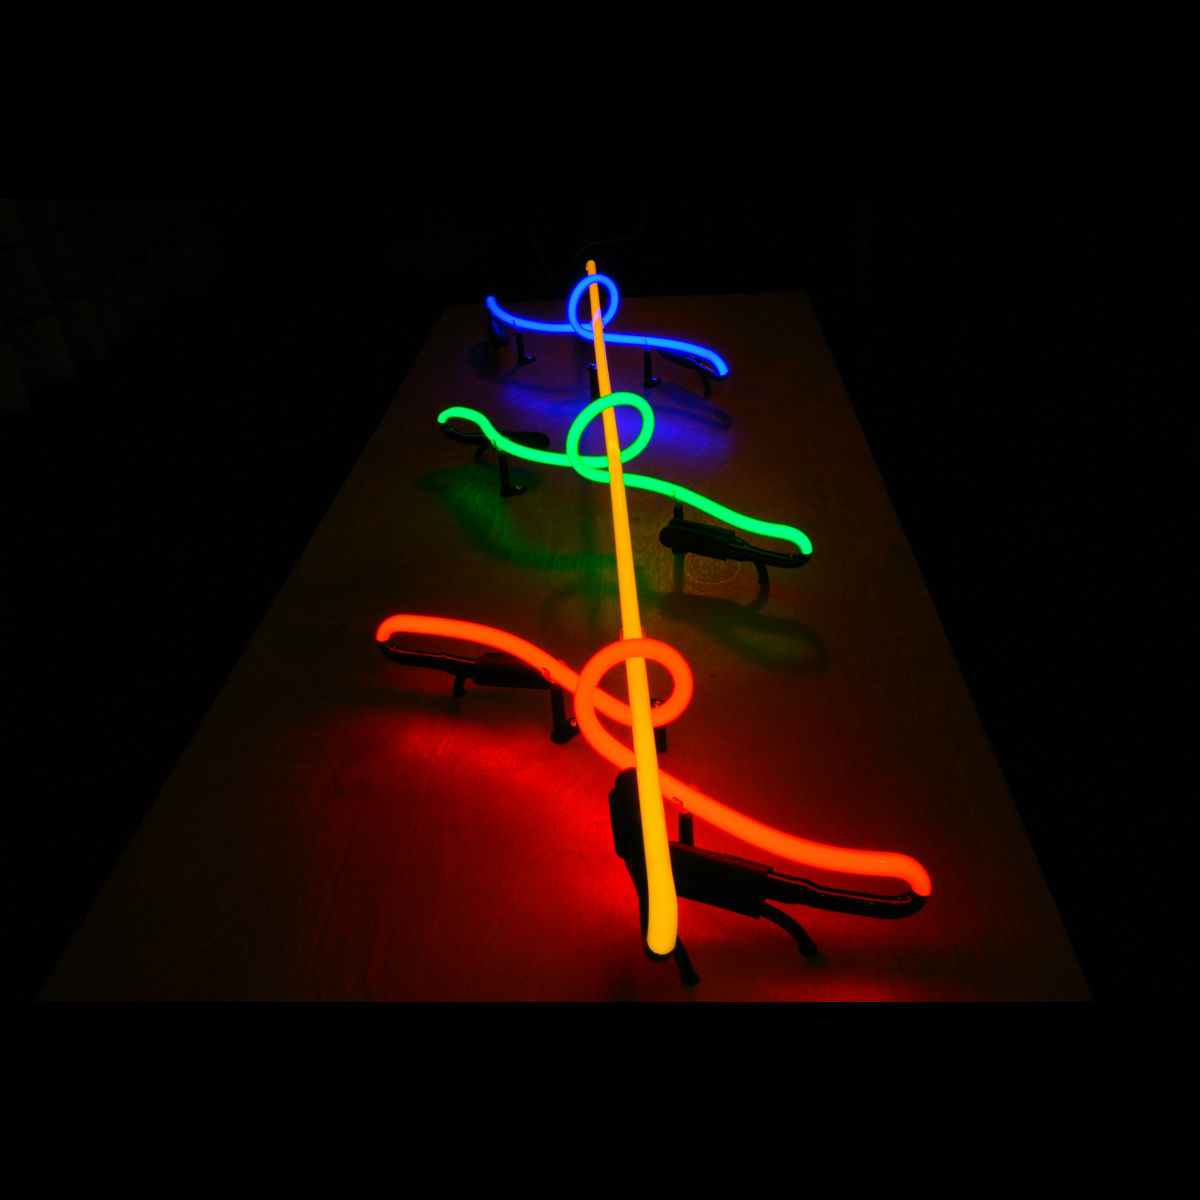 Three Dimensional Italian Stained Glass Neon Light Sculpture